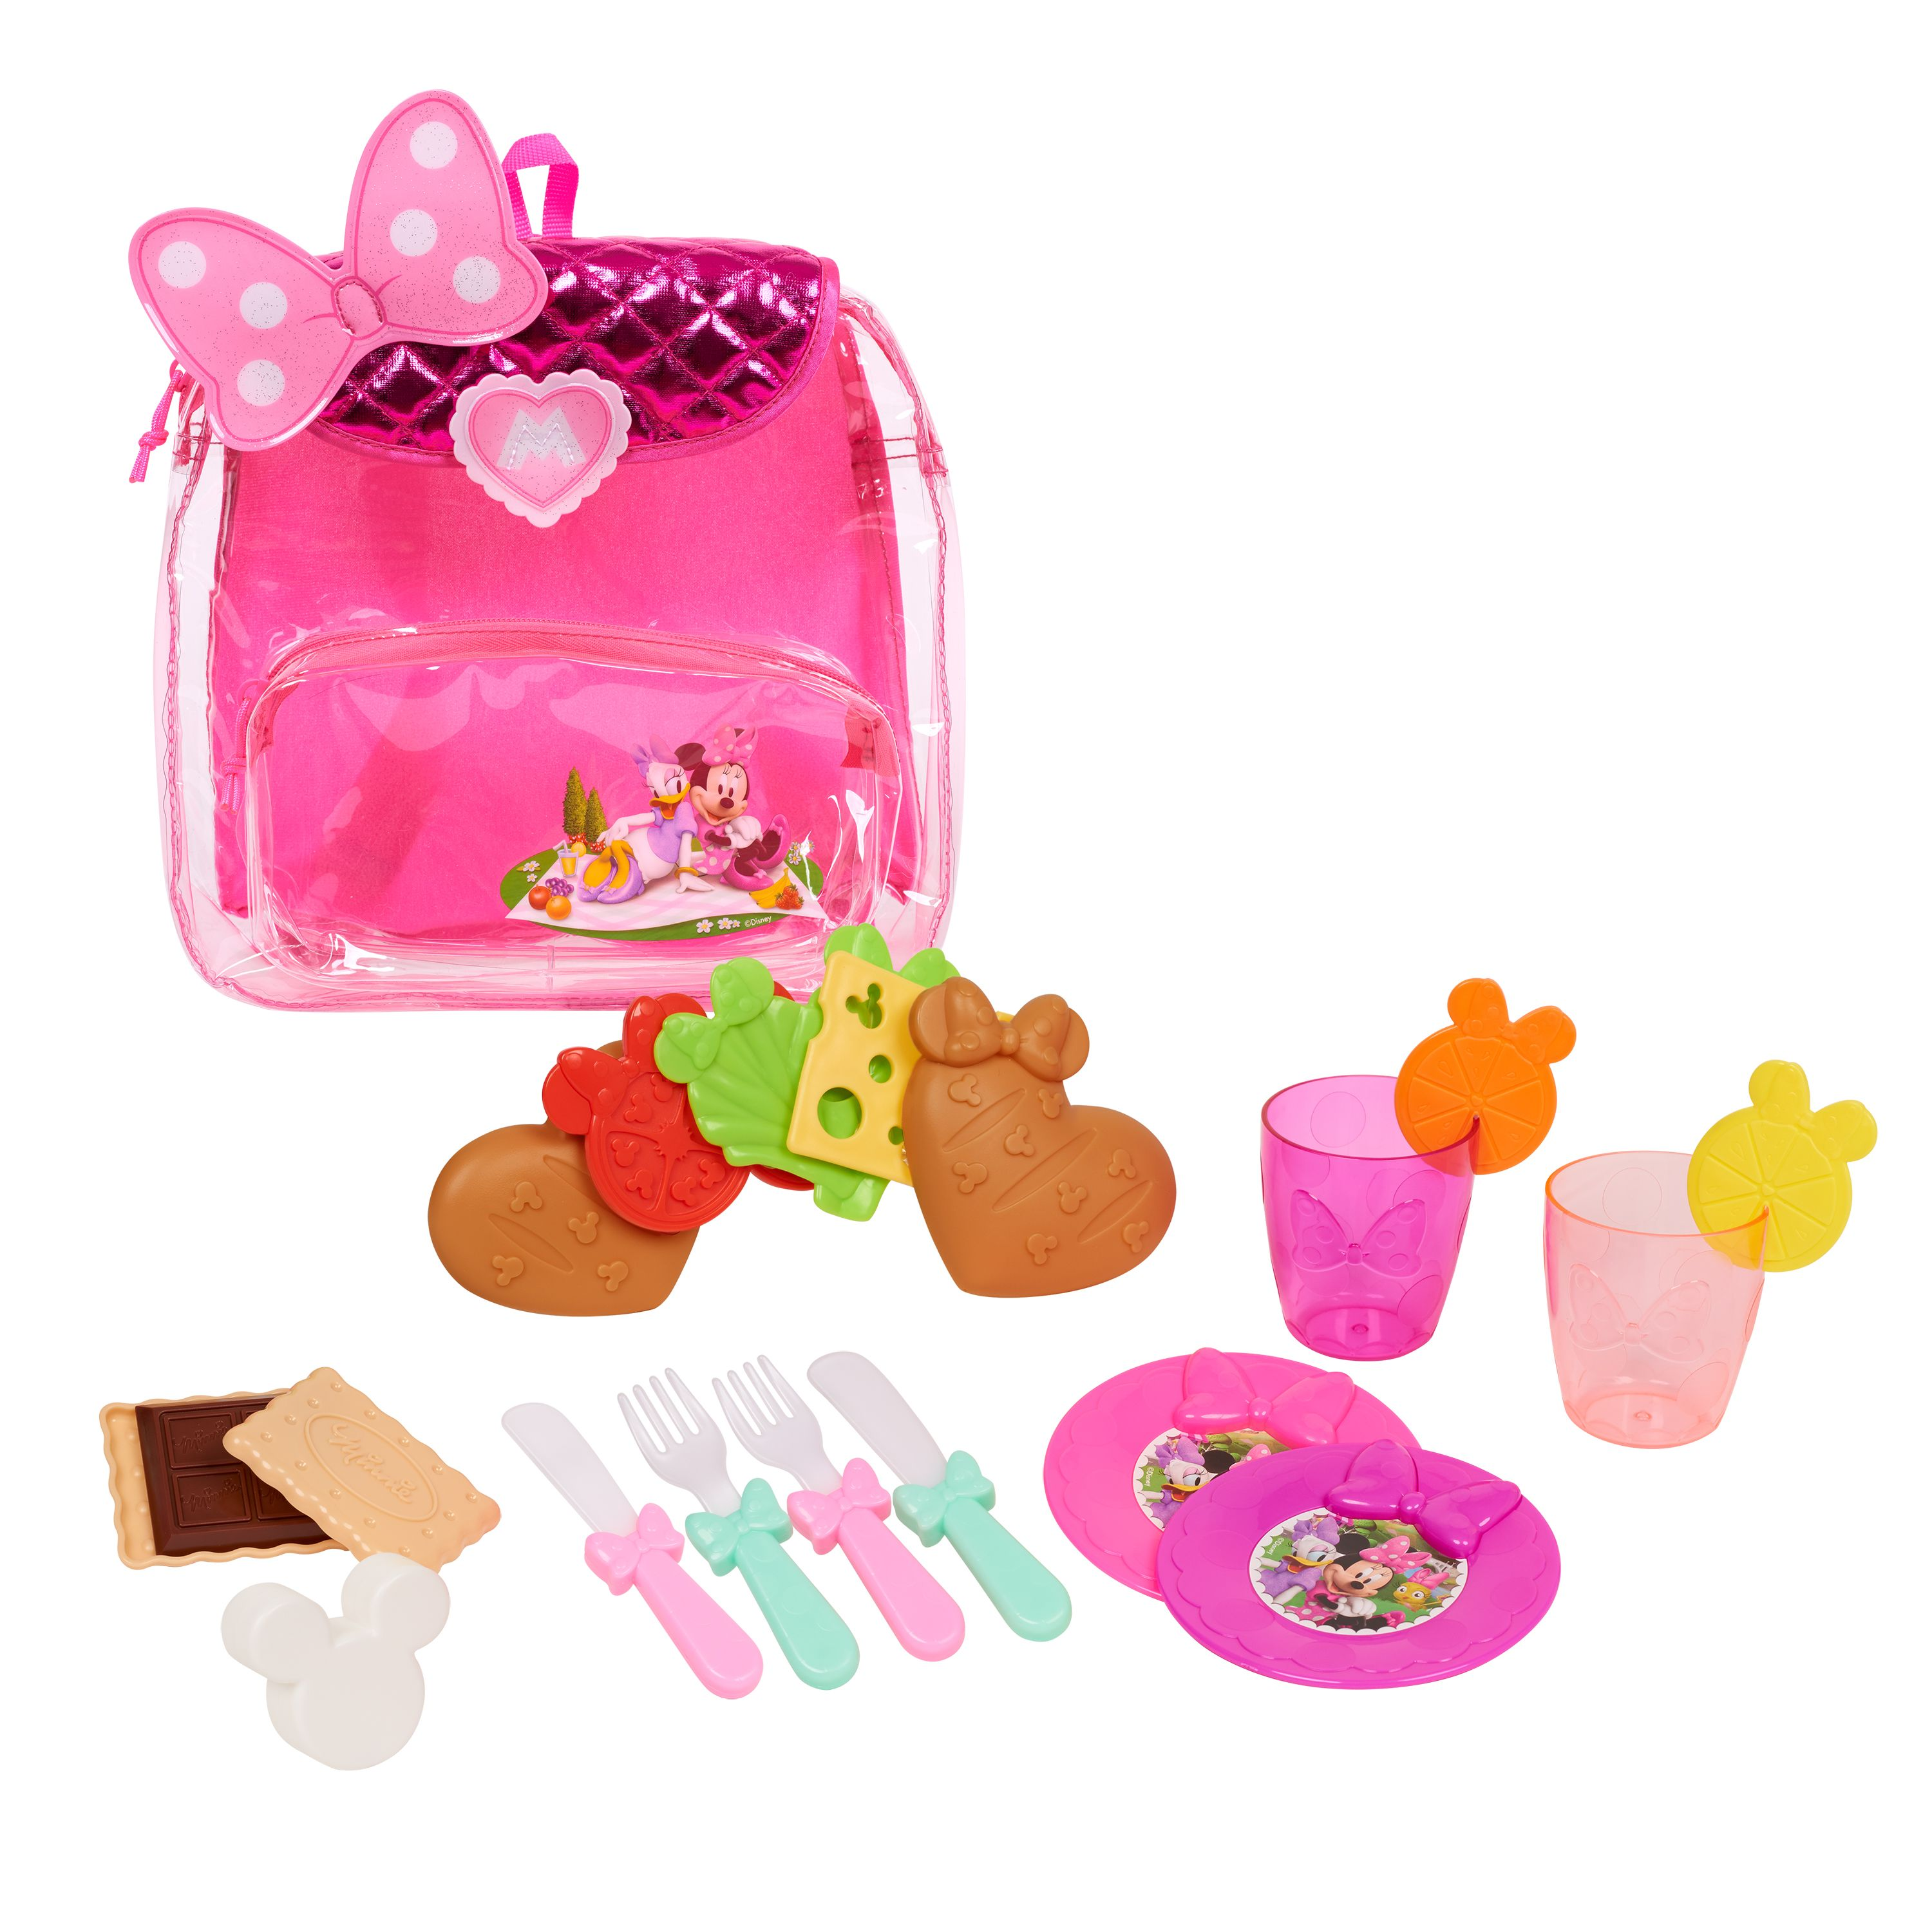 Styles may vary Minnie Bow Tique Bowtastic Shopping Basket Set Pink